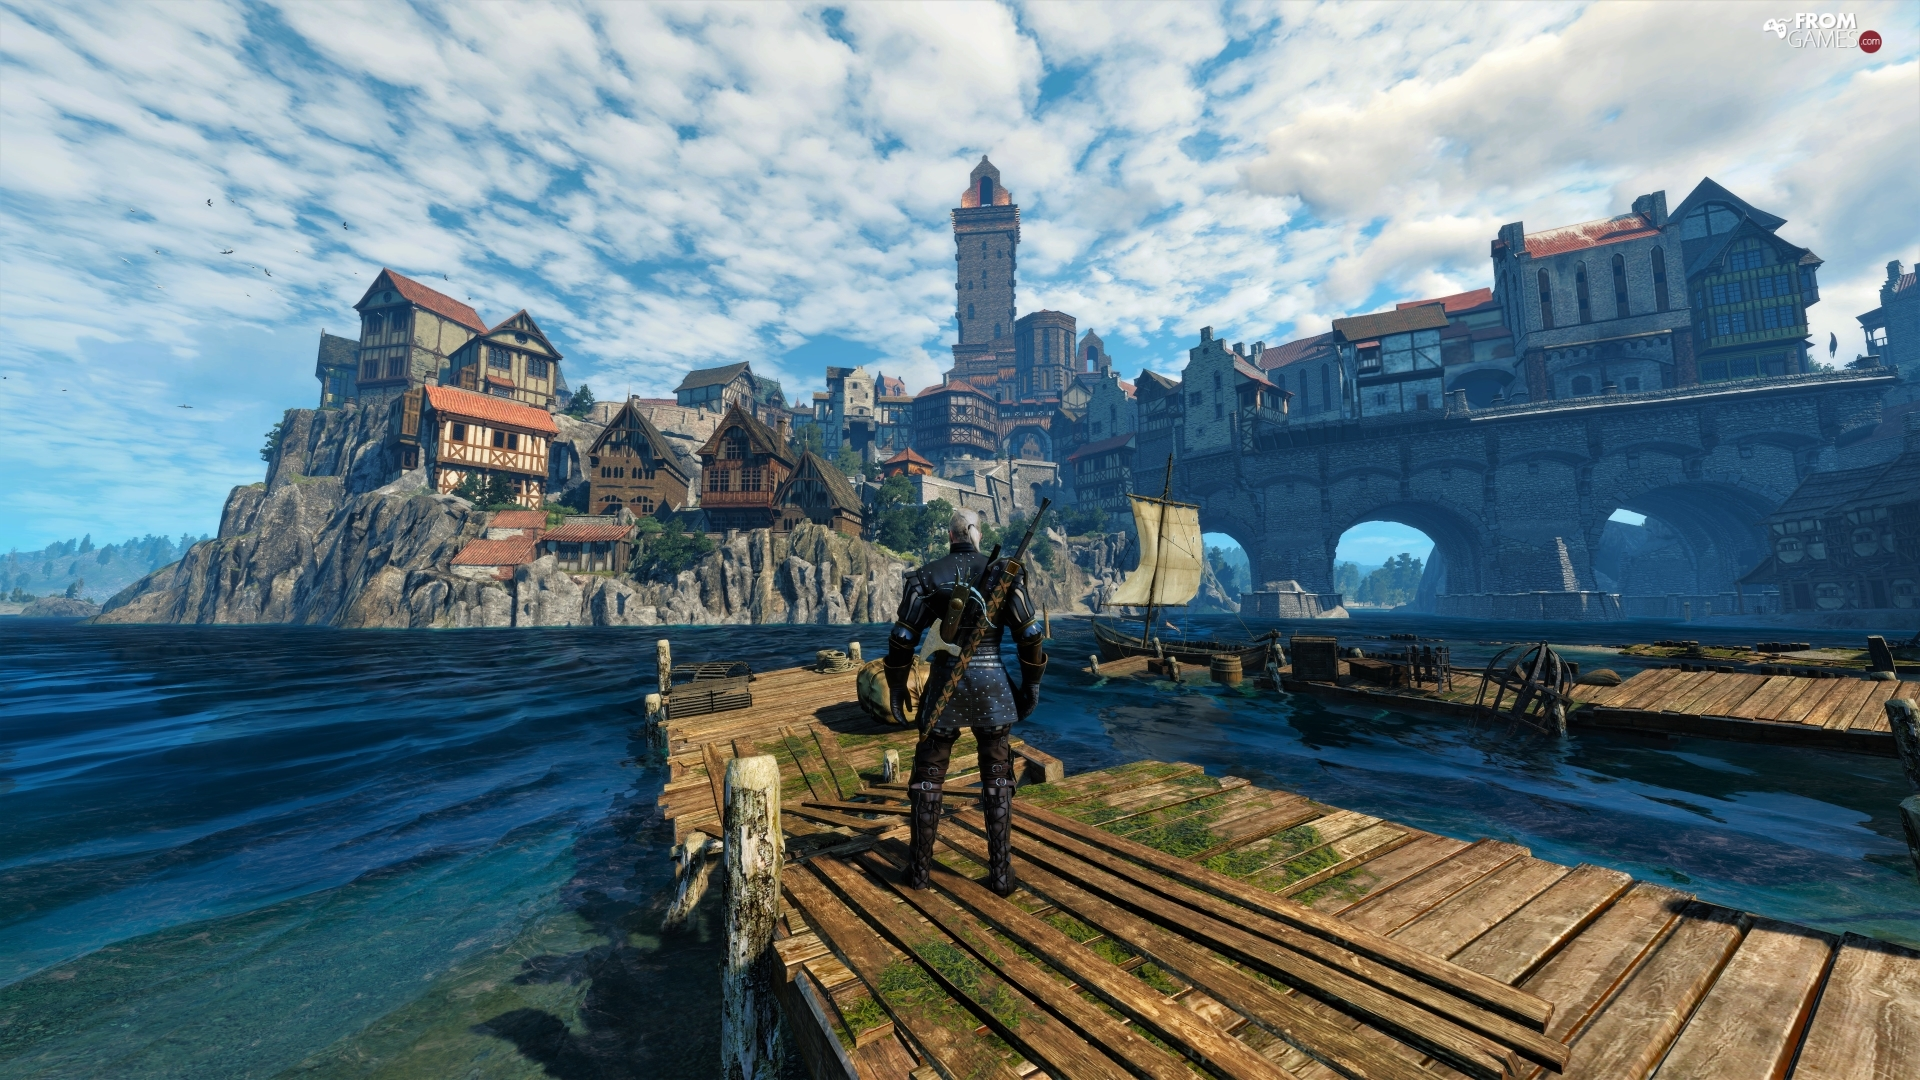 Geralt, The Witcher 3 Wild Hunt, Houses, The Witcher 3 Wild Hunt, game, Platform, Town